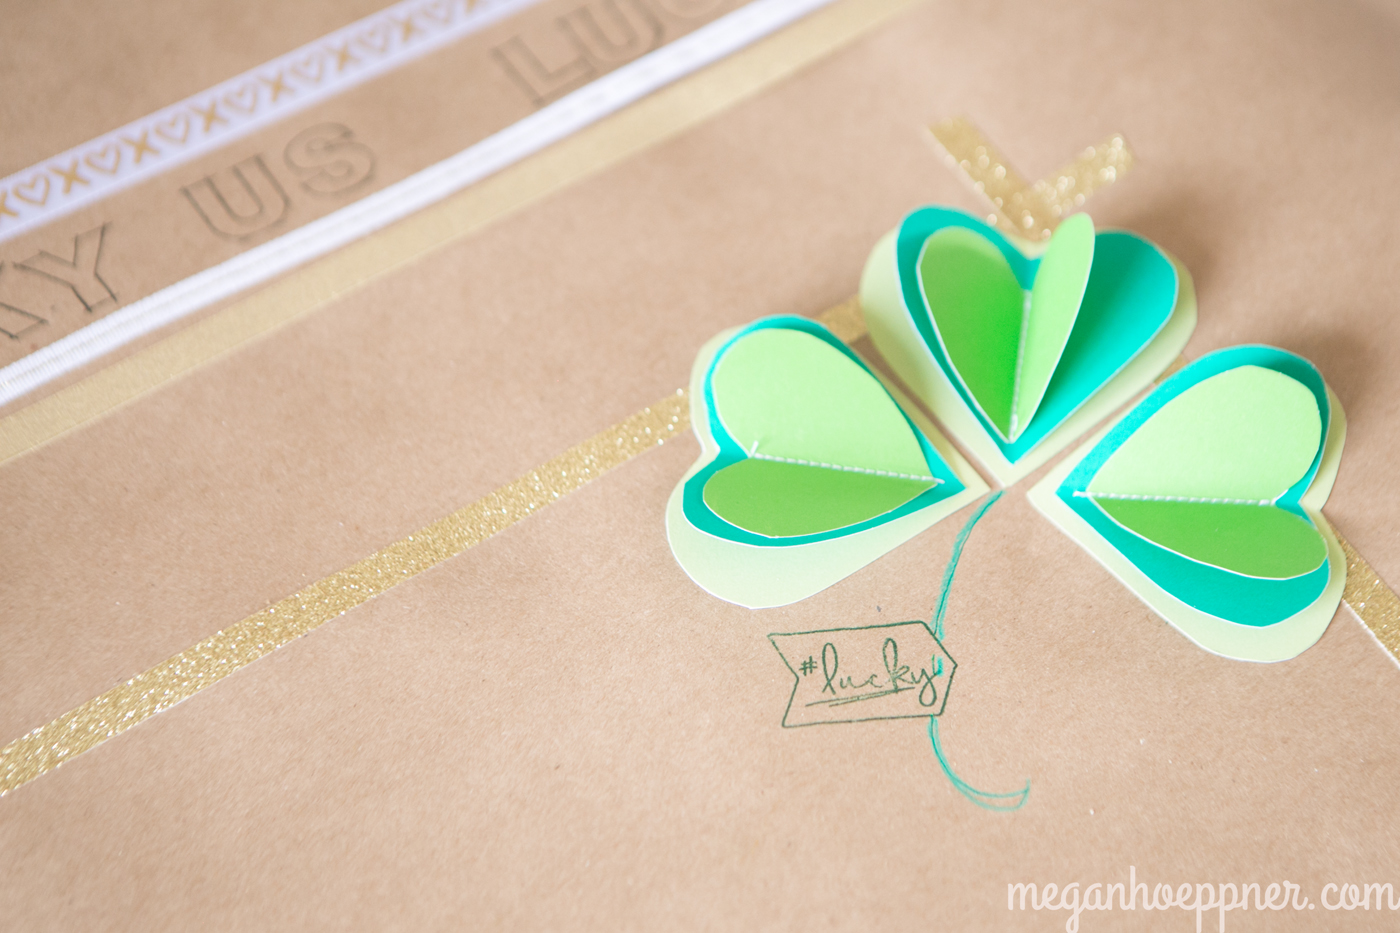 I used the Some Kinda Wonderful stamp set from Close To My Heart to create the #lucky tag.